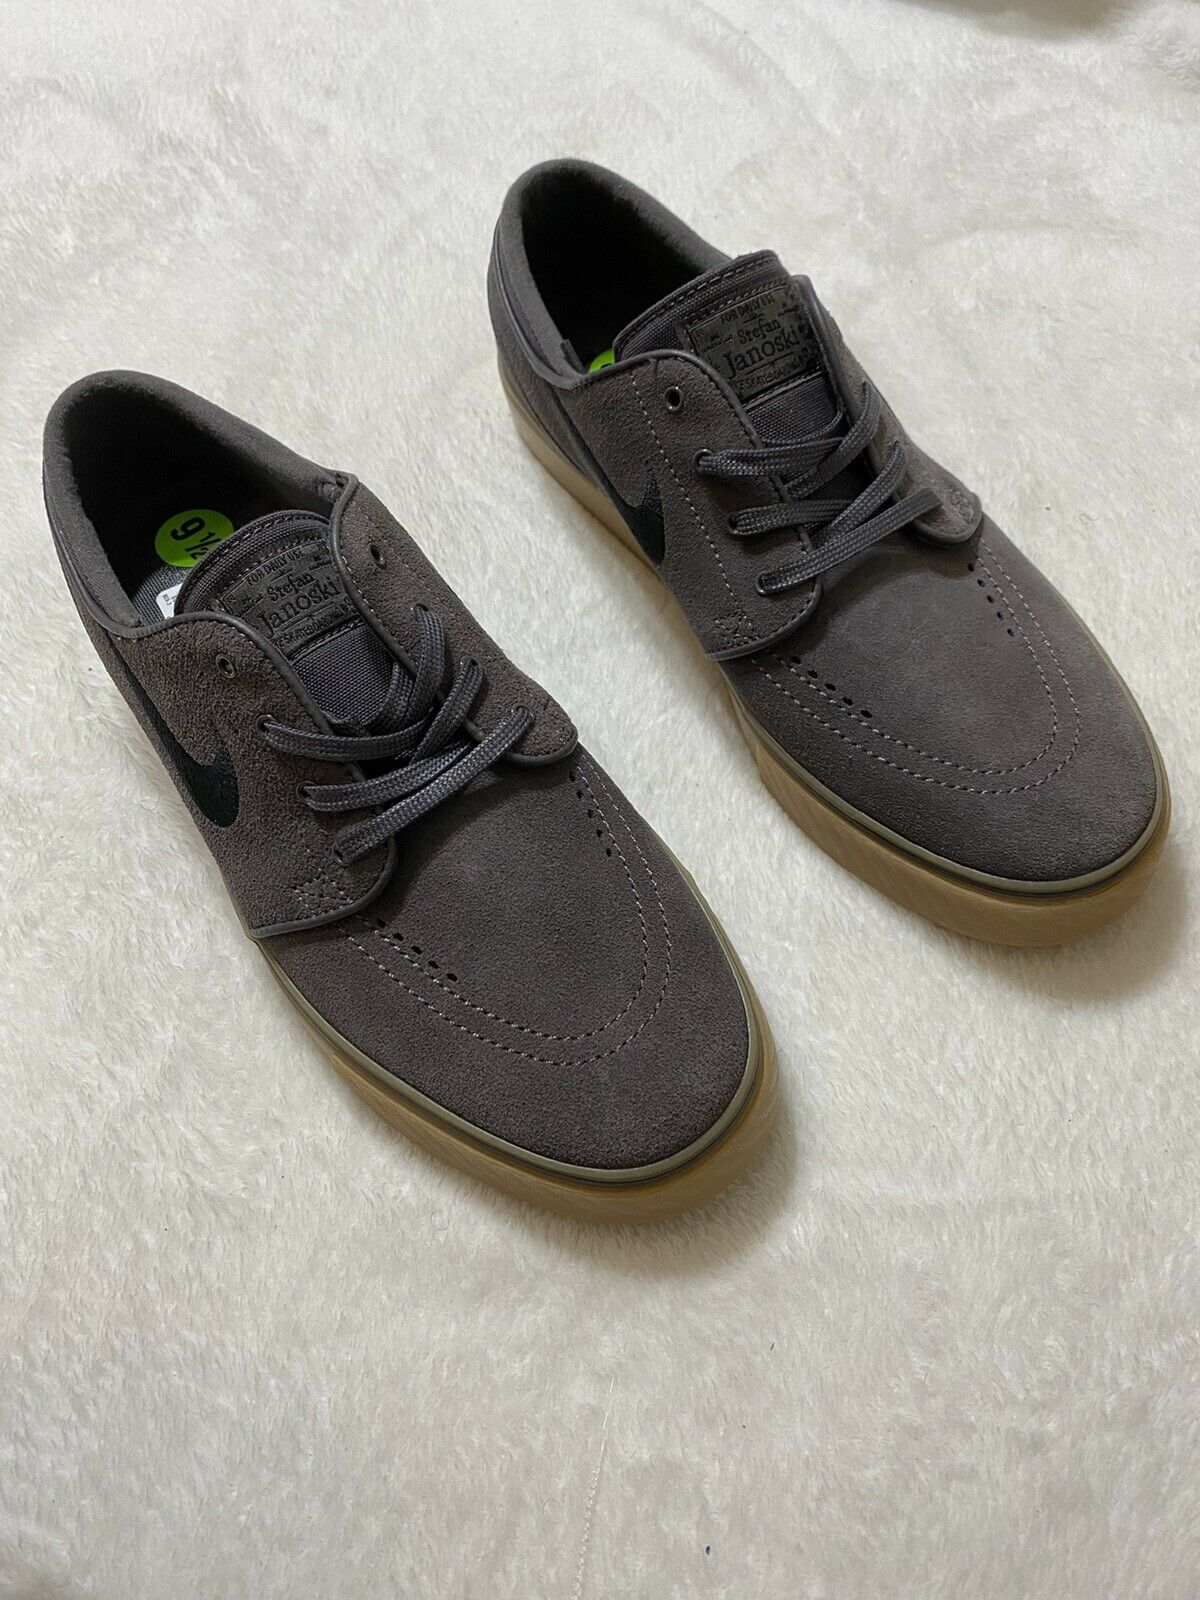 Salida baños amistad  Nike SB Zoom Stefan Janoski Thunder Grey Gum Light Brown 333824-069 Sz 8.5  for sale online | eBay